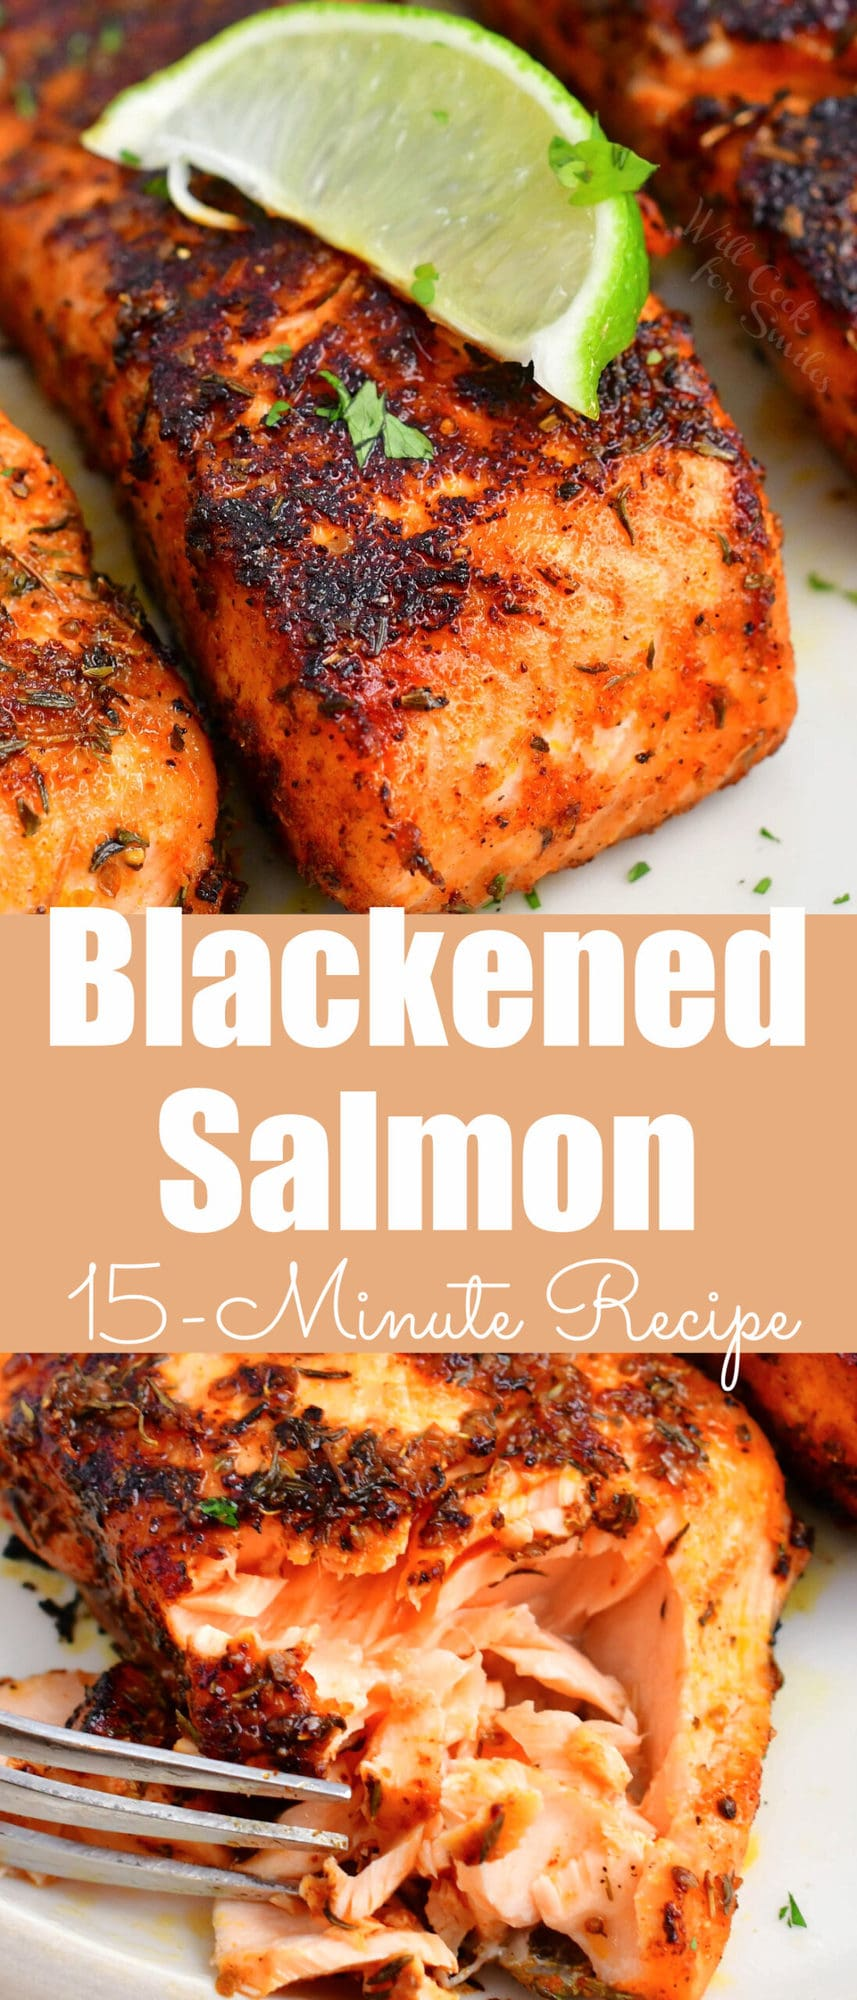 title collage of blackened salmon up close and flaked off salmon meat